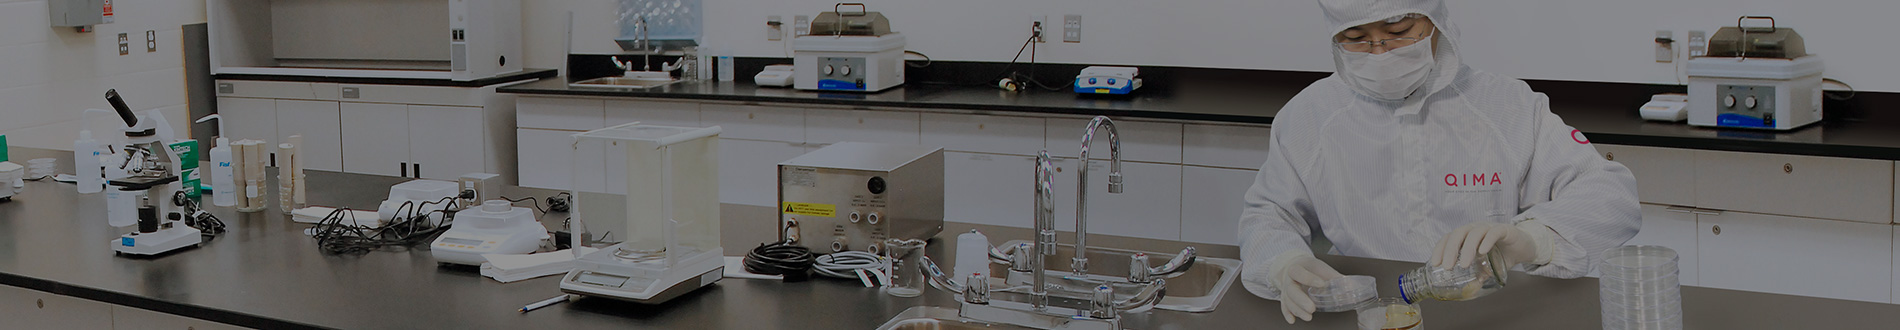 QIMA Food Testing Laboratory – Food Quality Labs